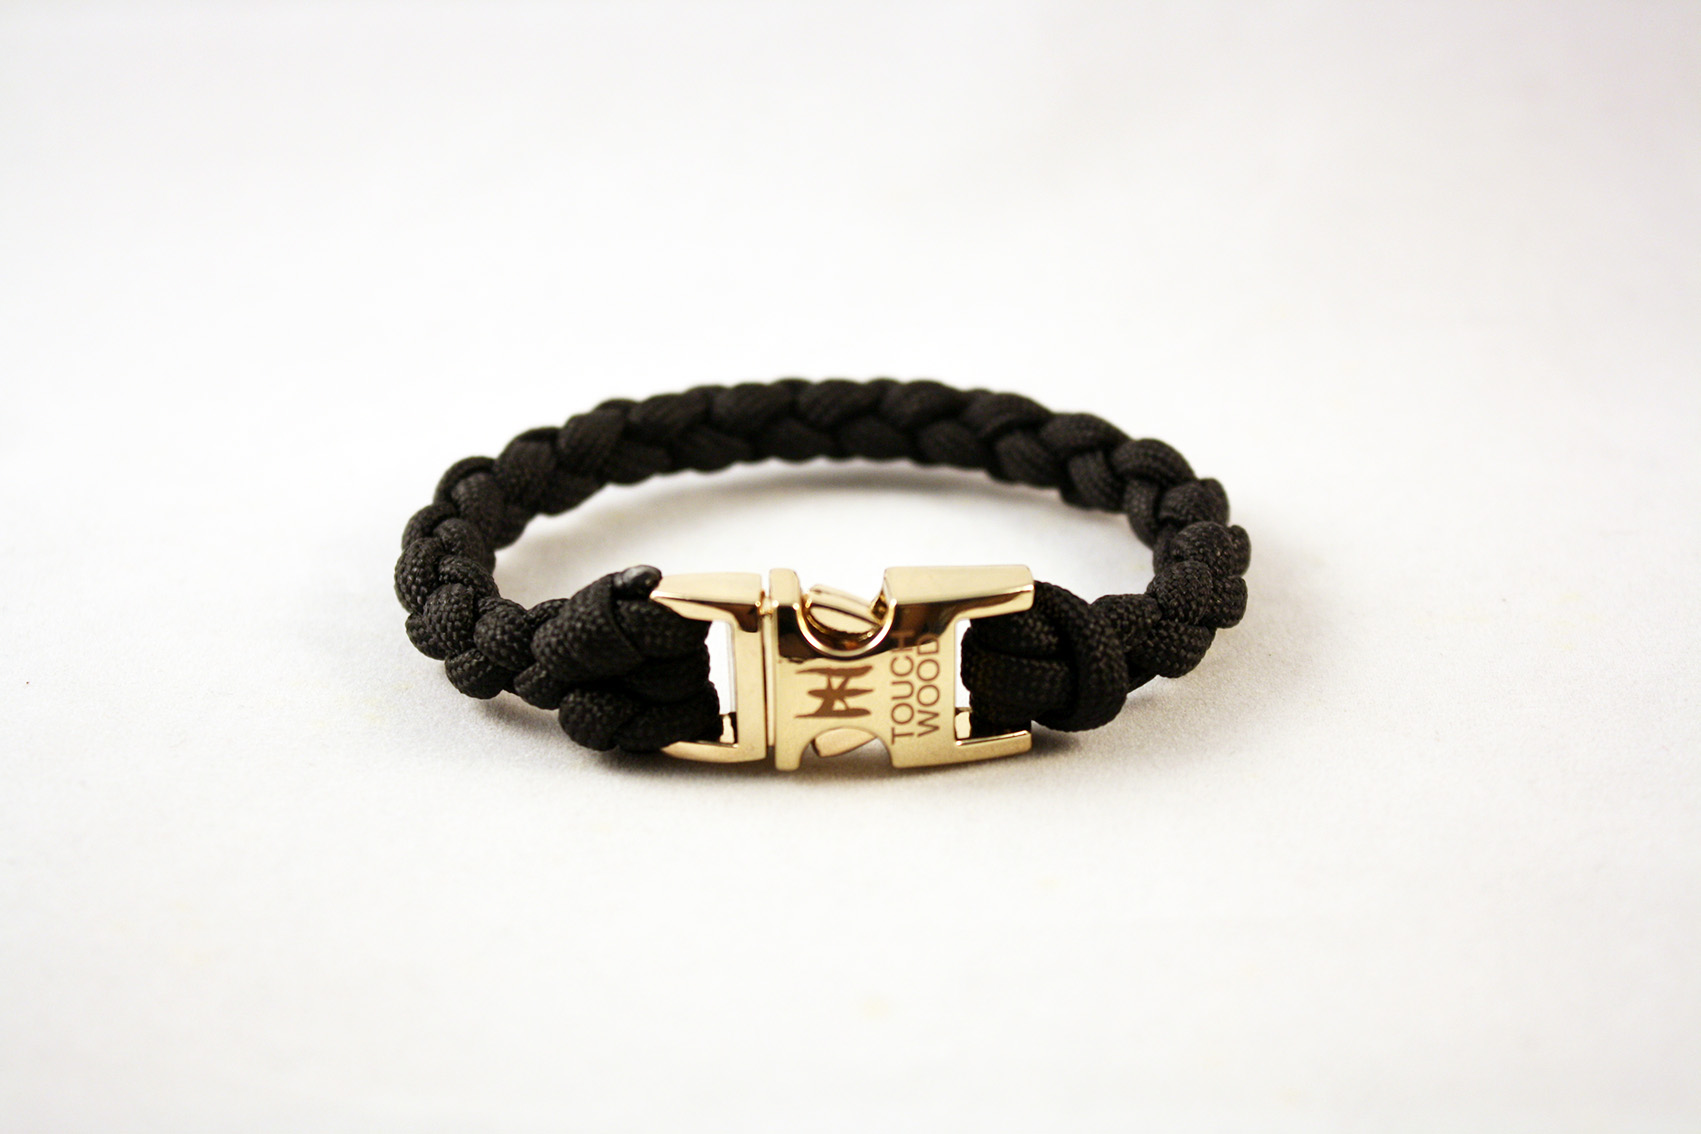 kevlar with silver bracelet and rekord cord store black en gold zancan